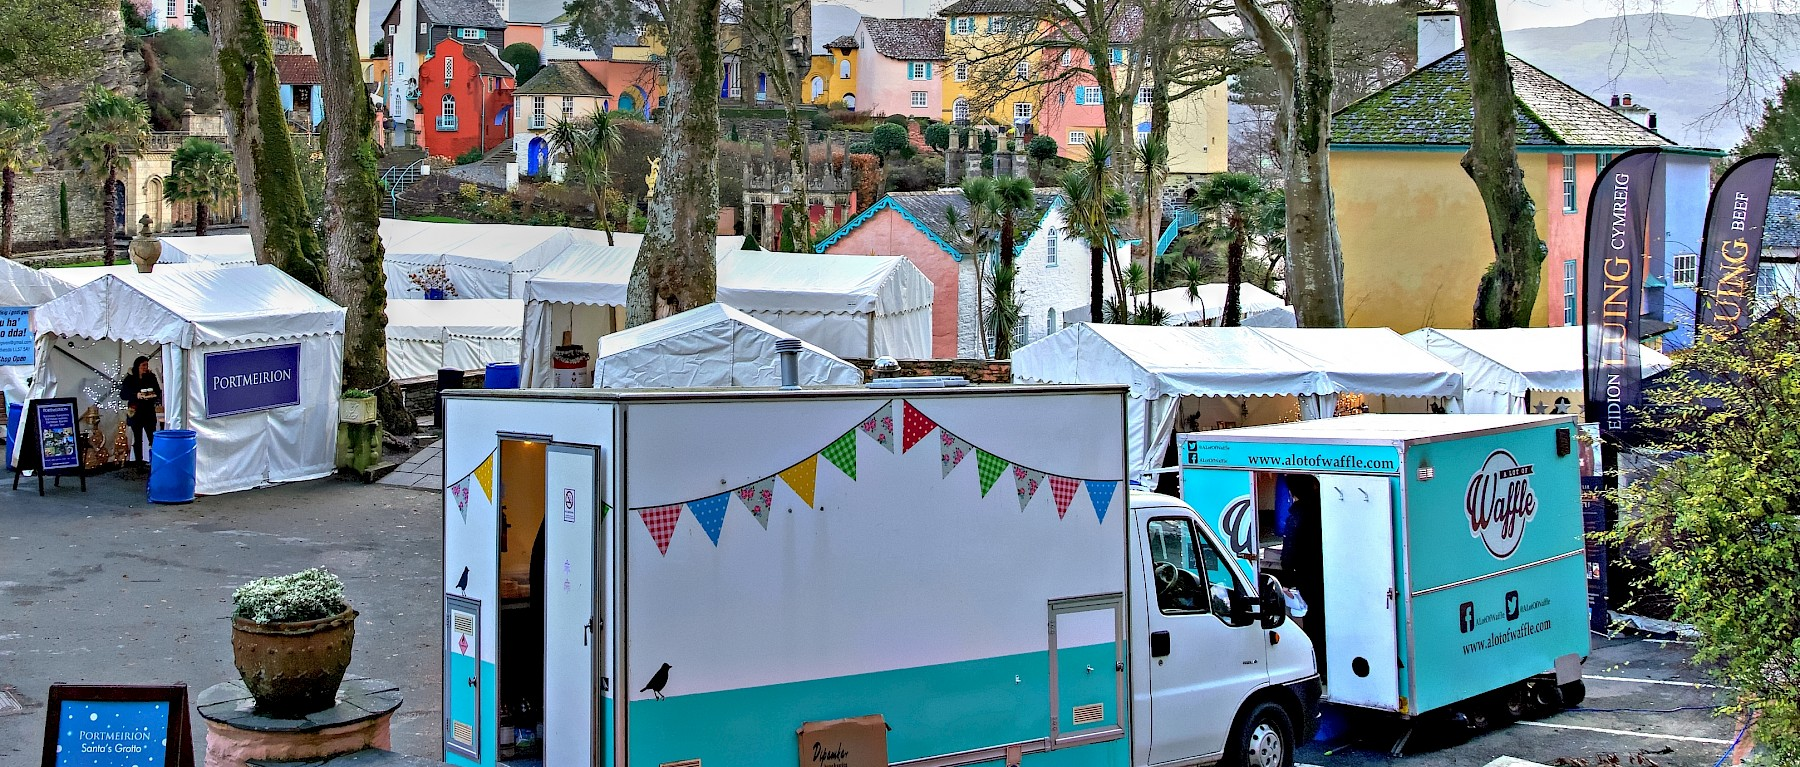 Christmas markets, fairs and festivities in north Wales